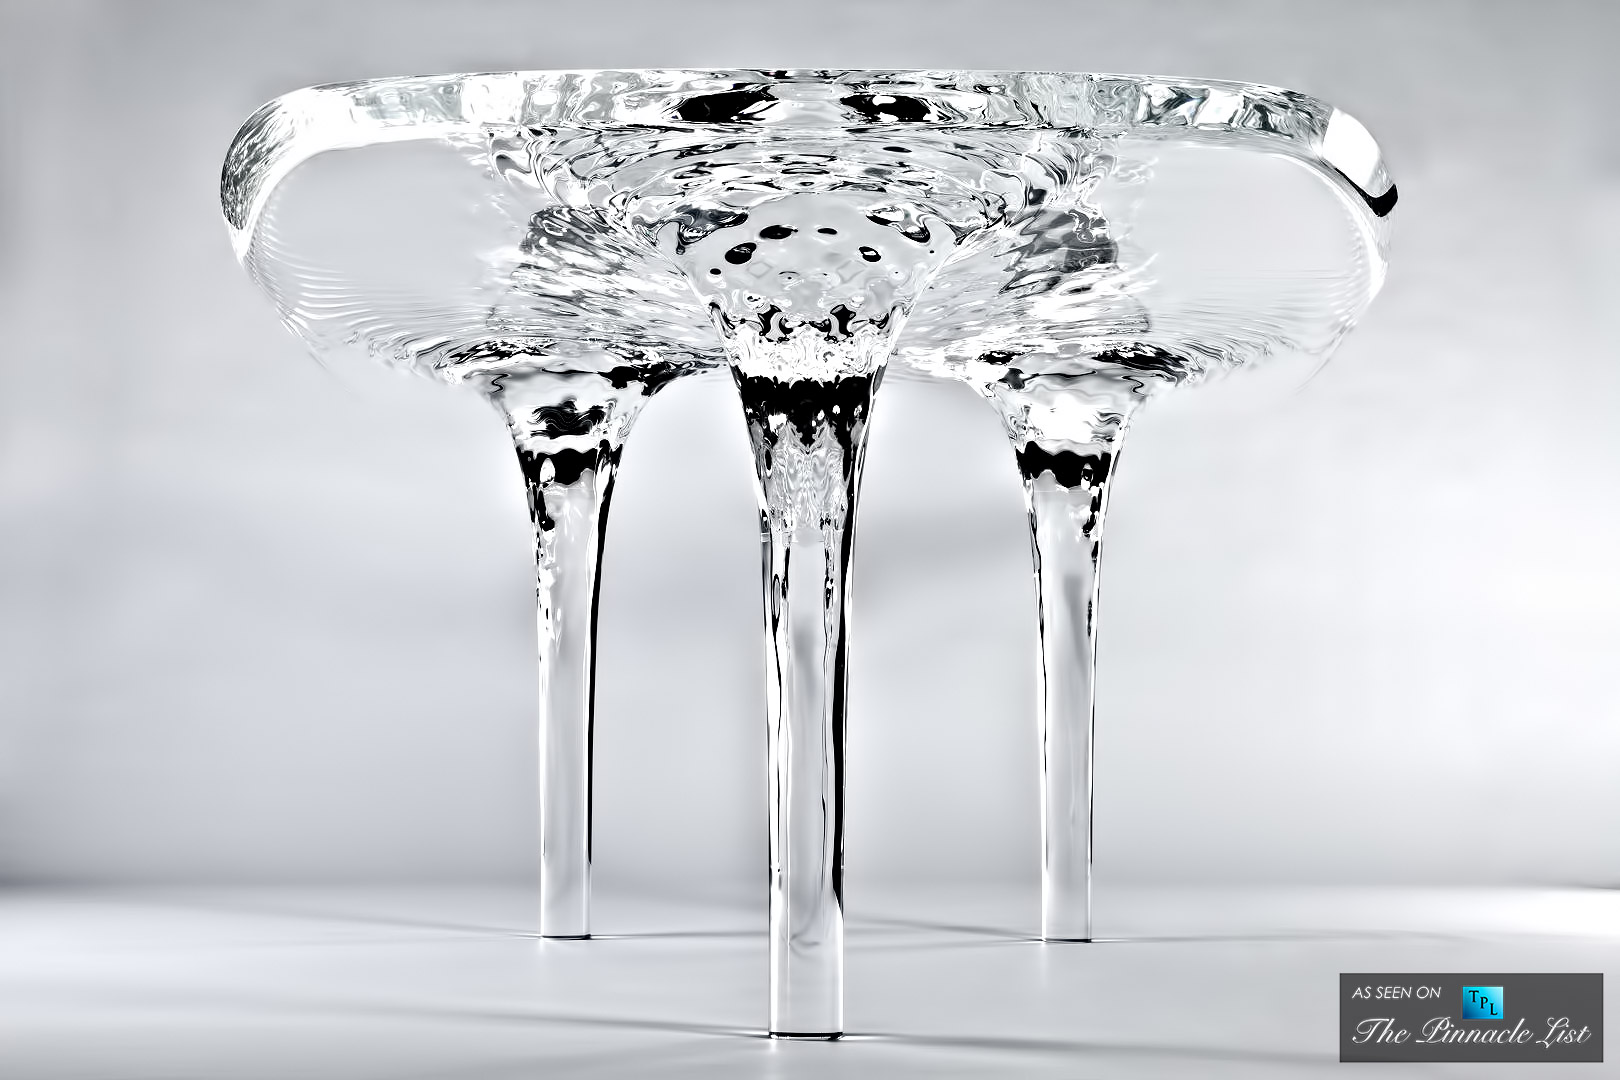 $250,000 Luxury Equilibrium – Spotlighting the Liquid Glacial Dining Table by Zaha Hadid